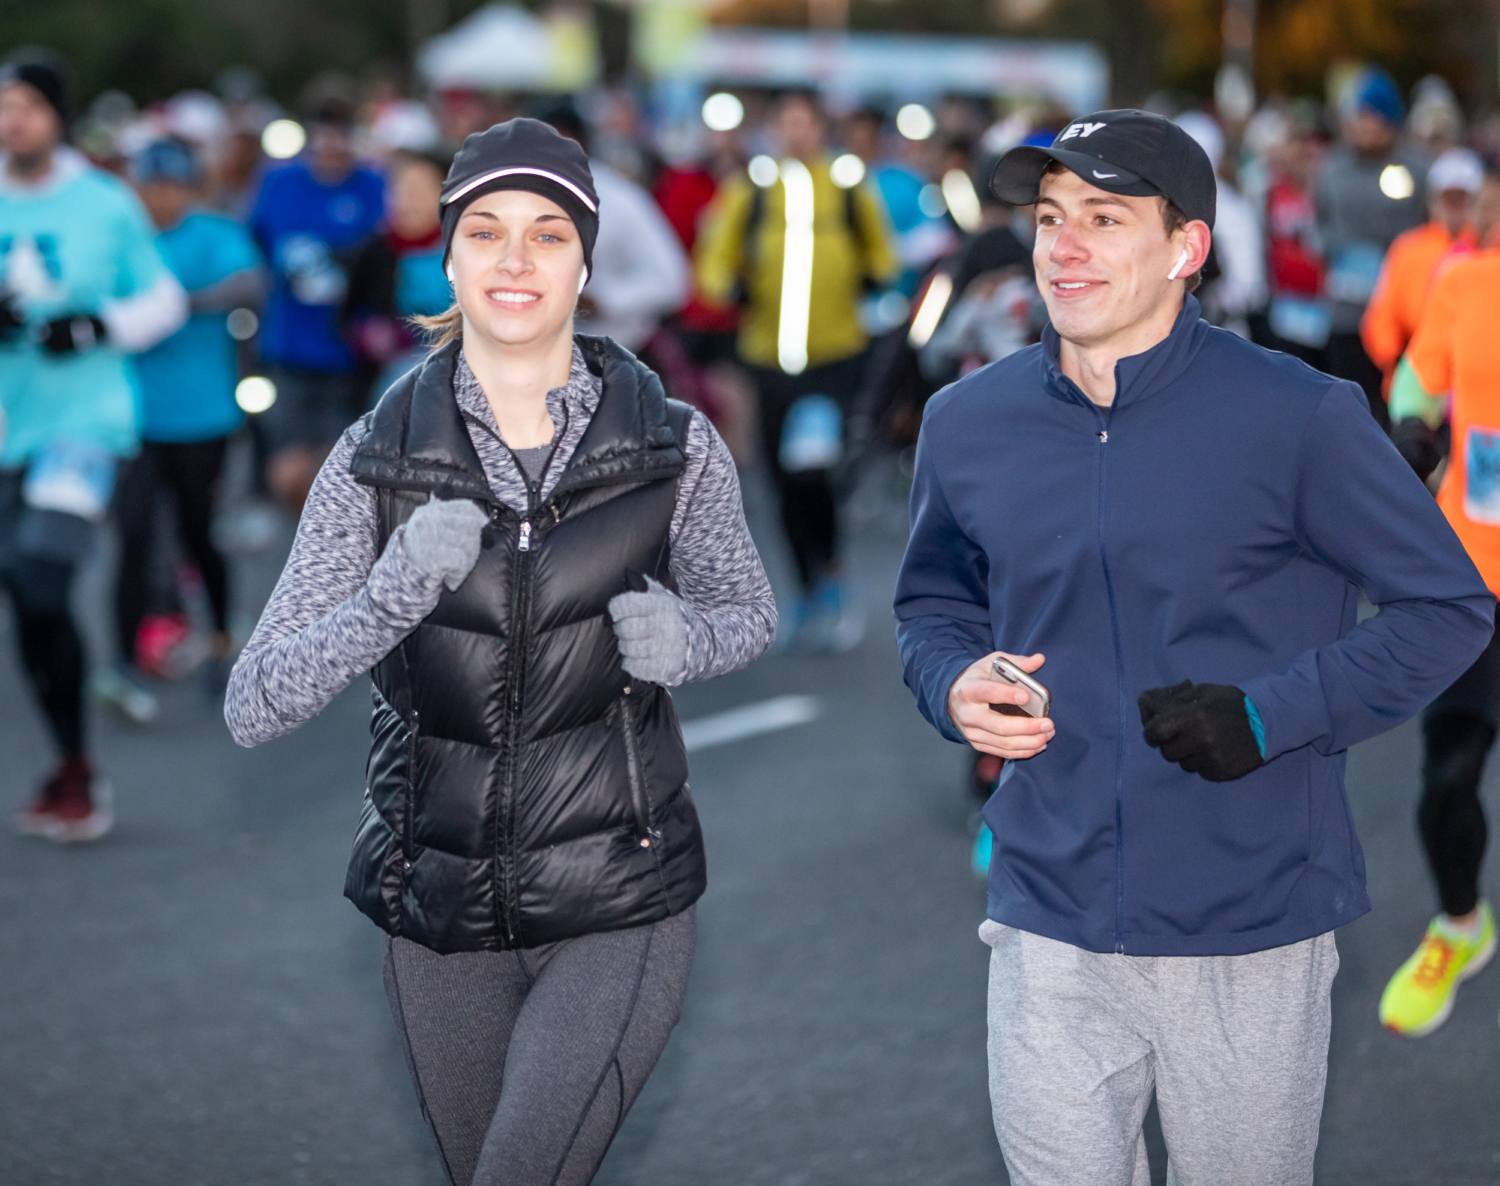 Two runners stay safe by running together and carrying their phone.